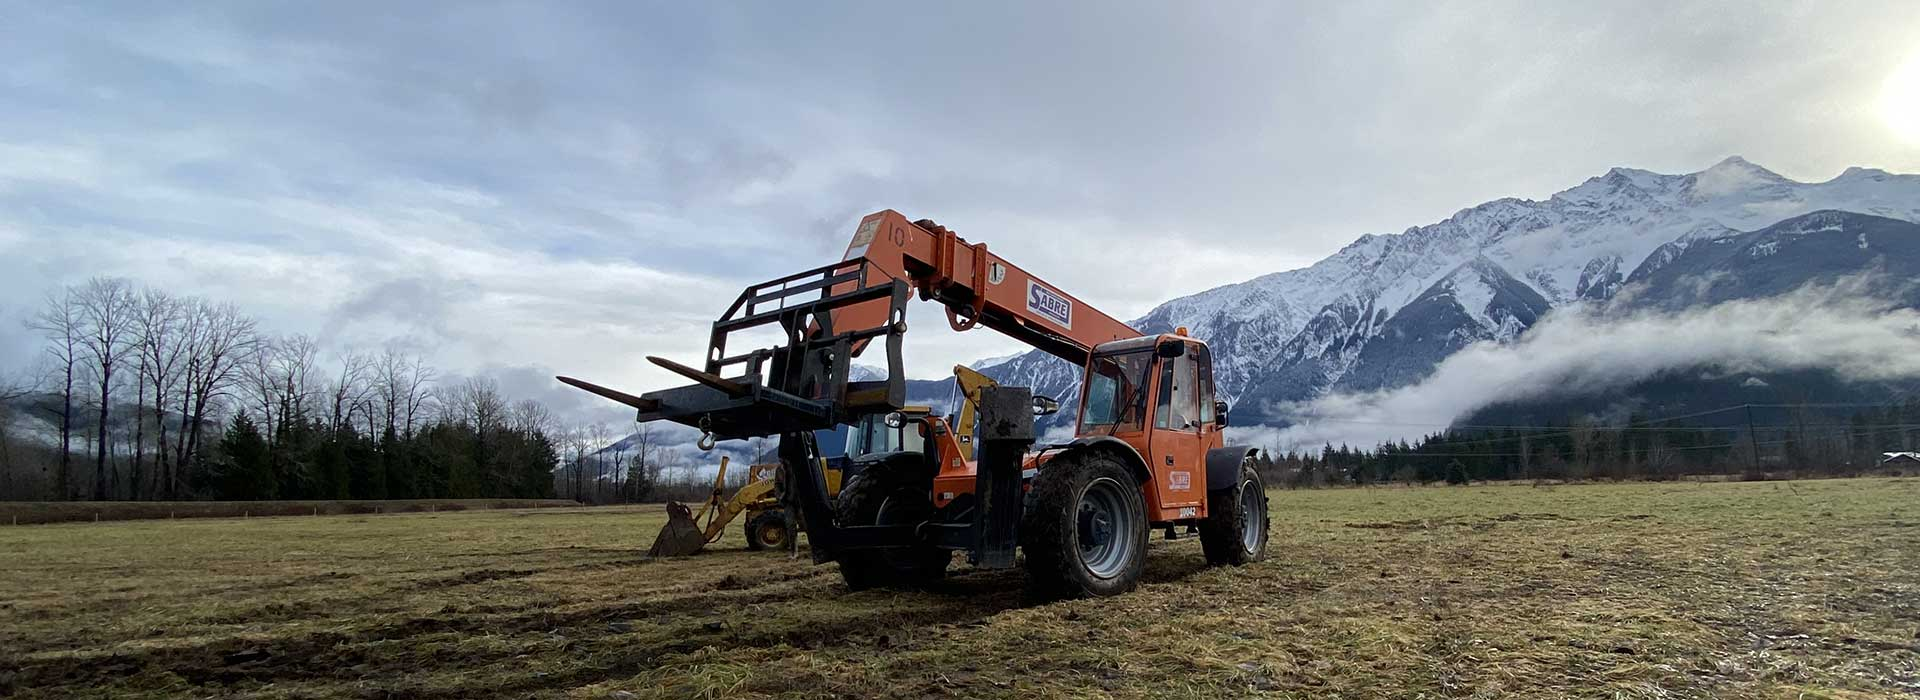 Equipment rentals in Whistler BC